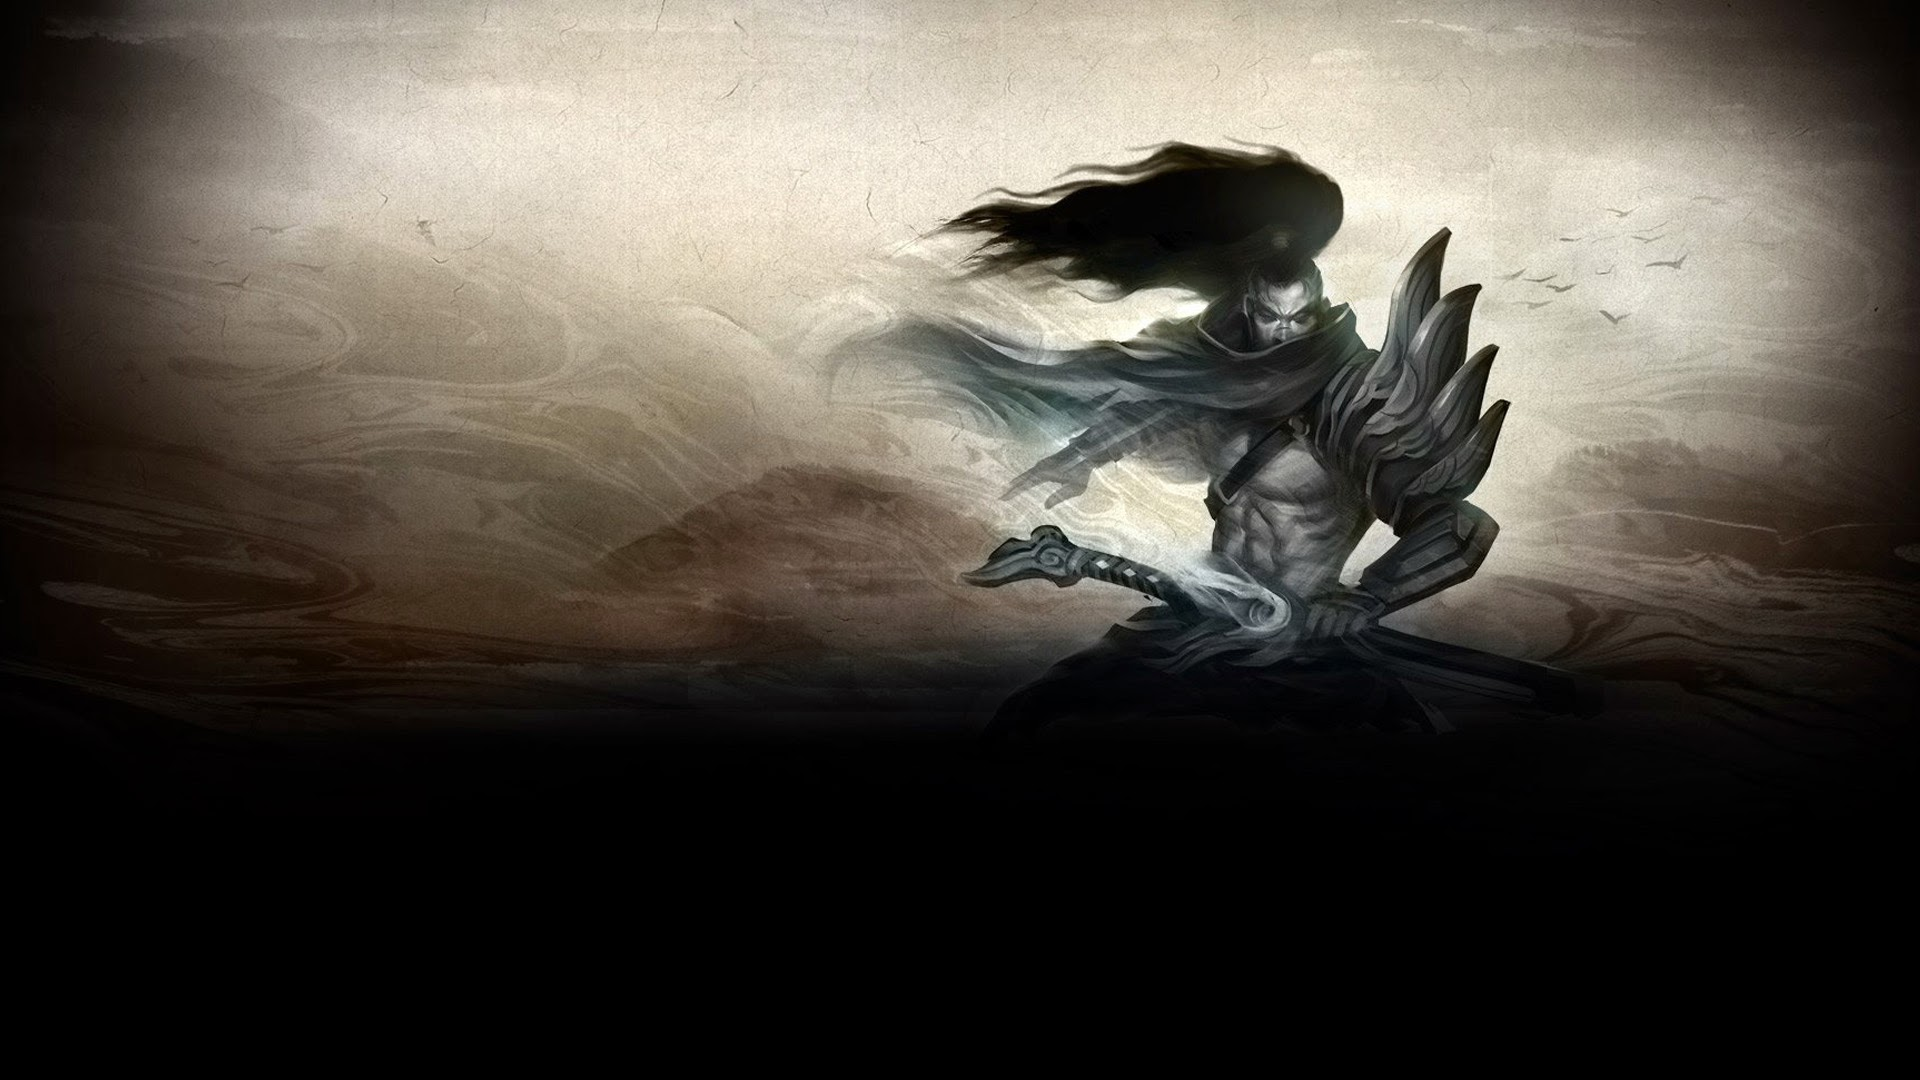 yasuo league of legends lol champion hd wallpaper 1920x1080 76 Yasuo League Of Legends